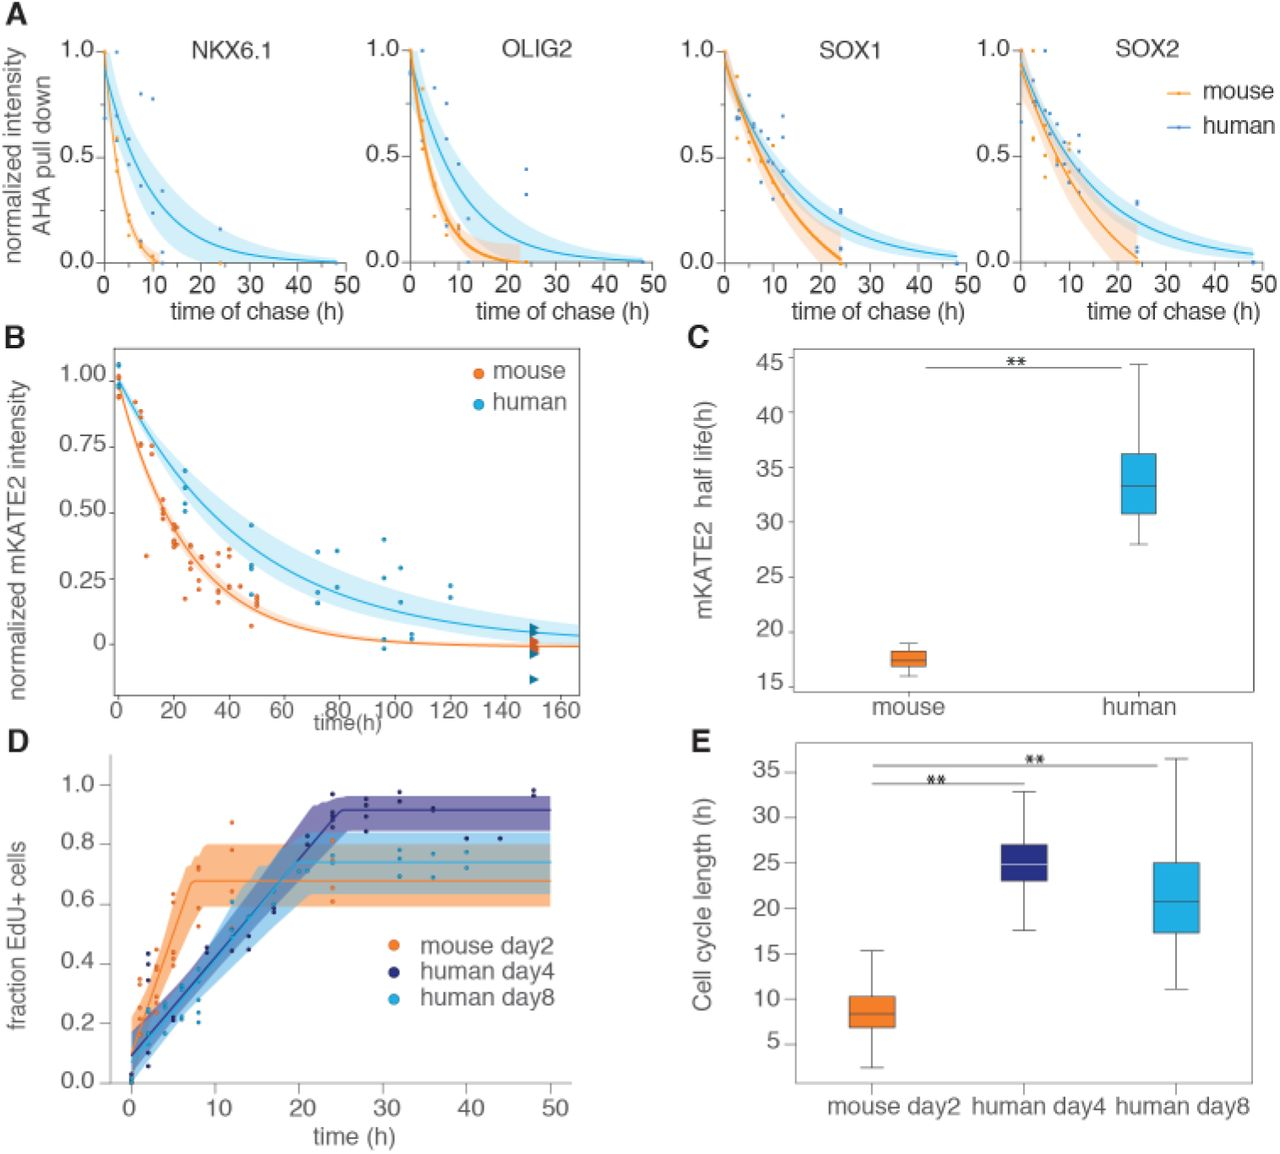 Protein degradation and cell cycle account for the speed differences between species. (A) Mouse and human normalized intensity measurements of NKX6.1, OLIG2, SOX1 and SOX2 after AHA pulse-chase experiments on AHA-labeled and purified nascent proteins. Line and shadowed areas show best exponential fit with 95% confidence intervals. (B) Normalized intensity measurements of mKATE2 in mouse and human Ptch1::T2A-mKate2 cell lines. Line and shadowed areas show best exponential fit and its 70% HDI. (C) Estimated half-lives for mKATE2 in mouse (orange) and human (blue) cells. (D) Cell cycle measurements of mouse neural progenitors at day two, and human neural progenitors at days 4 and 8. Line and shadowed areas show best fit and its 80% HDI (E) Cell cycle length estimations in mouse neural progenitors at day two, and human neural progenitors at days 4 and 8. For all plots, mouse data is orange-colored, and human is blue. Statistical significance (**) corresponds with